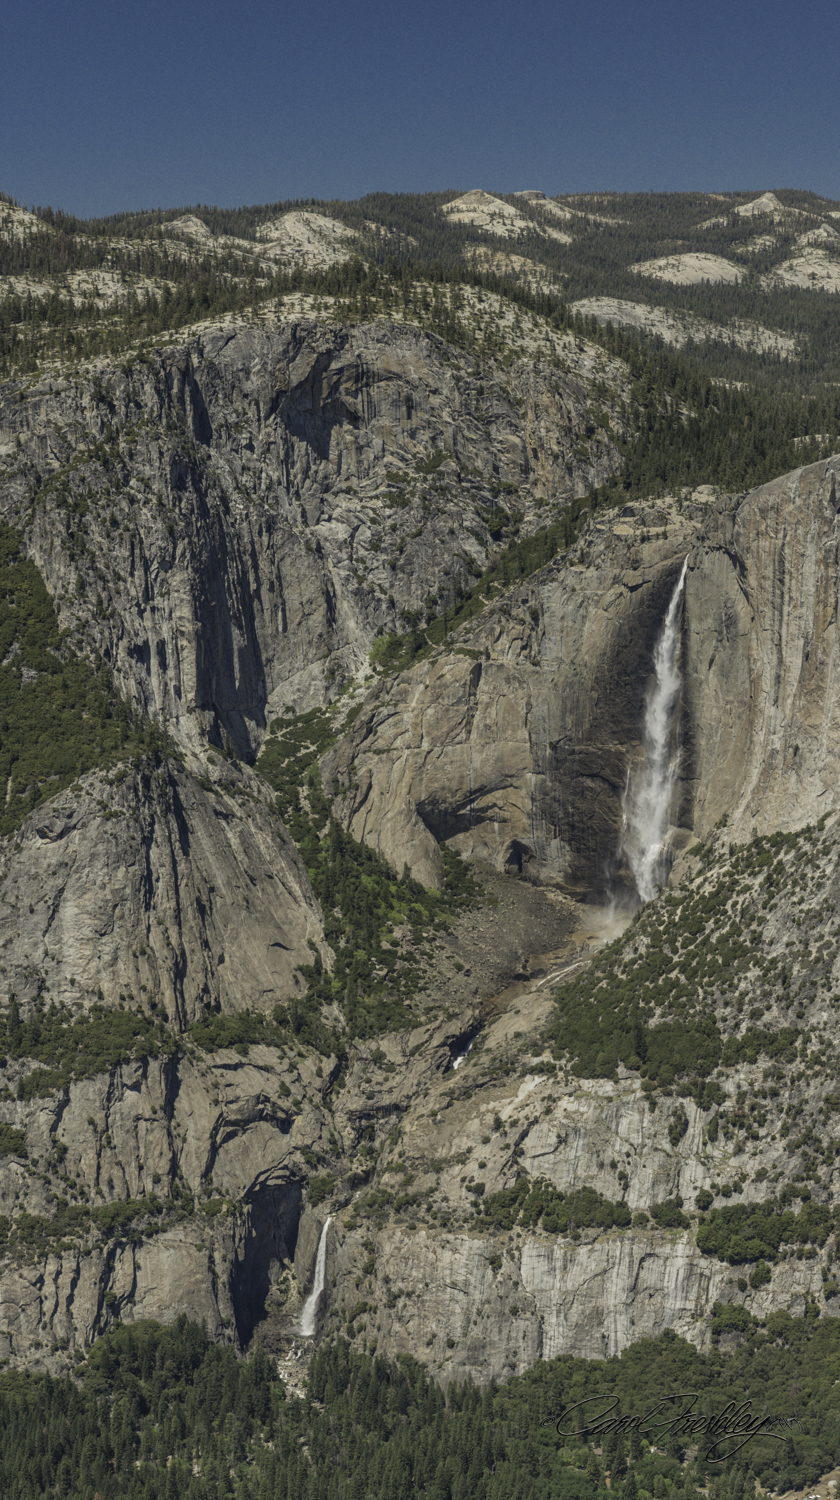 Taken from Glacier Point. Shows Upper and Lower Yosemite Falls.